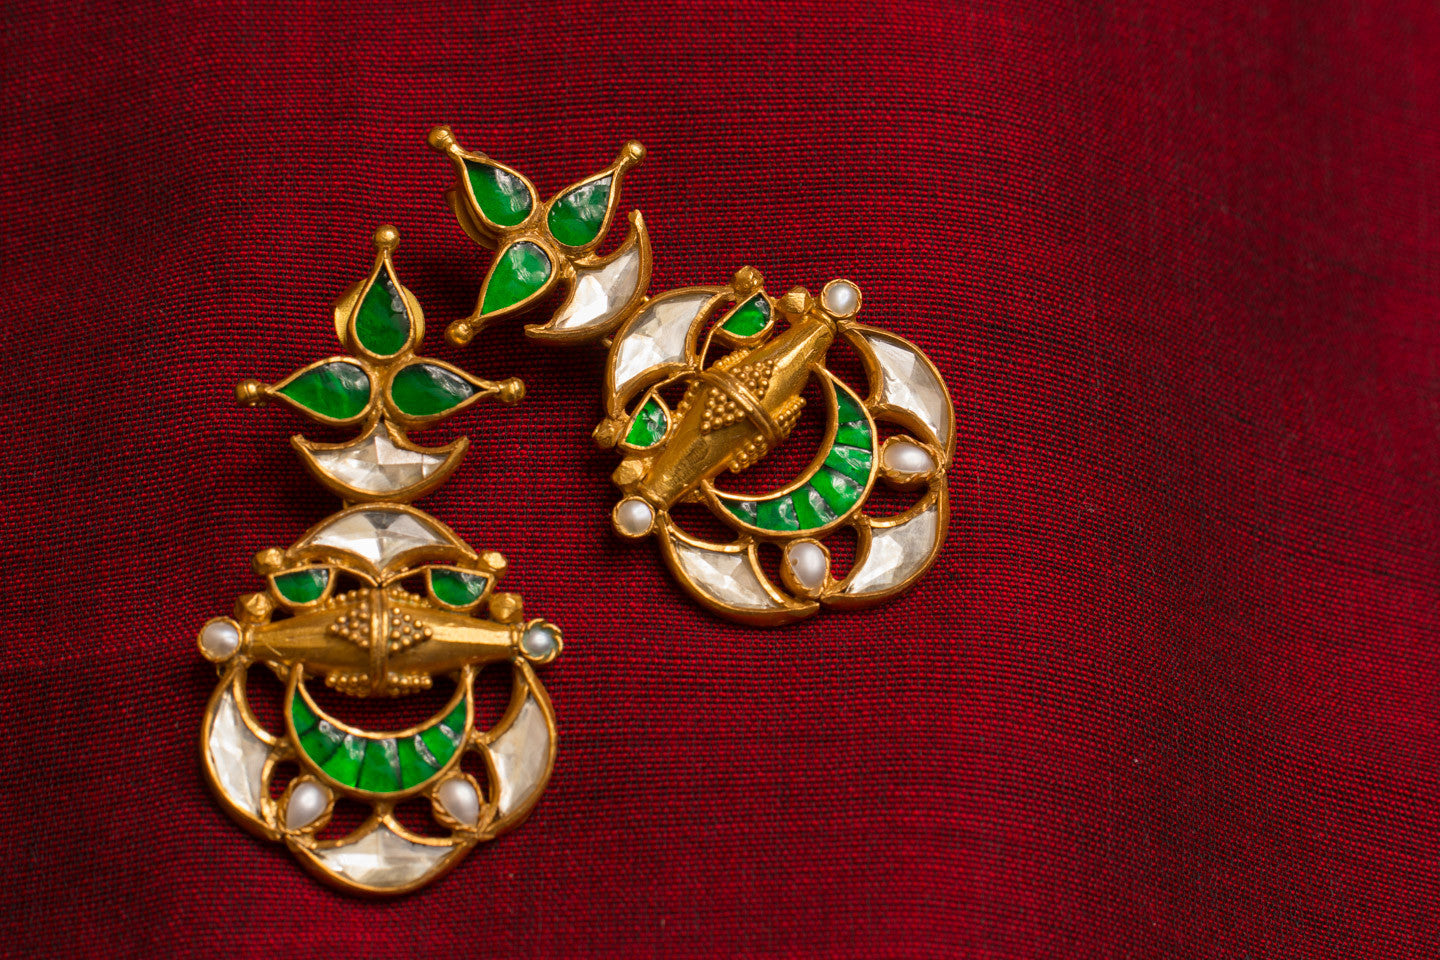 20a422-silver-gold-plated-amrapali-earrings-green-glass-pearl-alternate-view